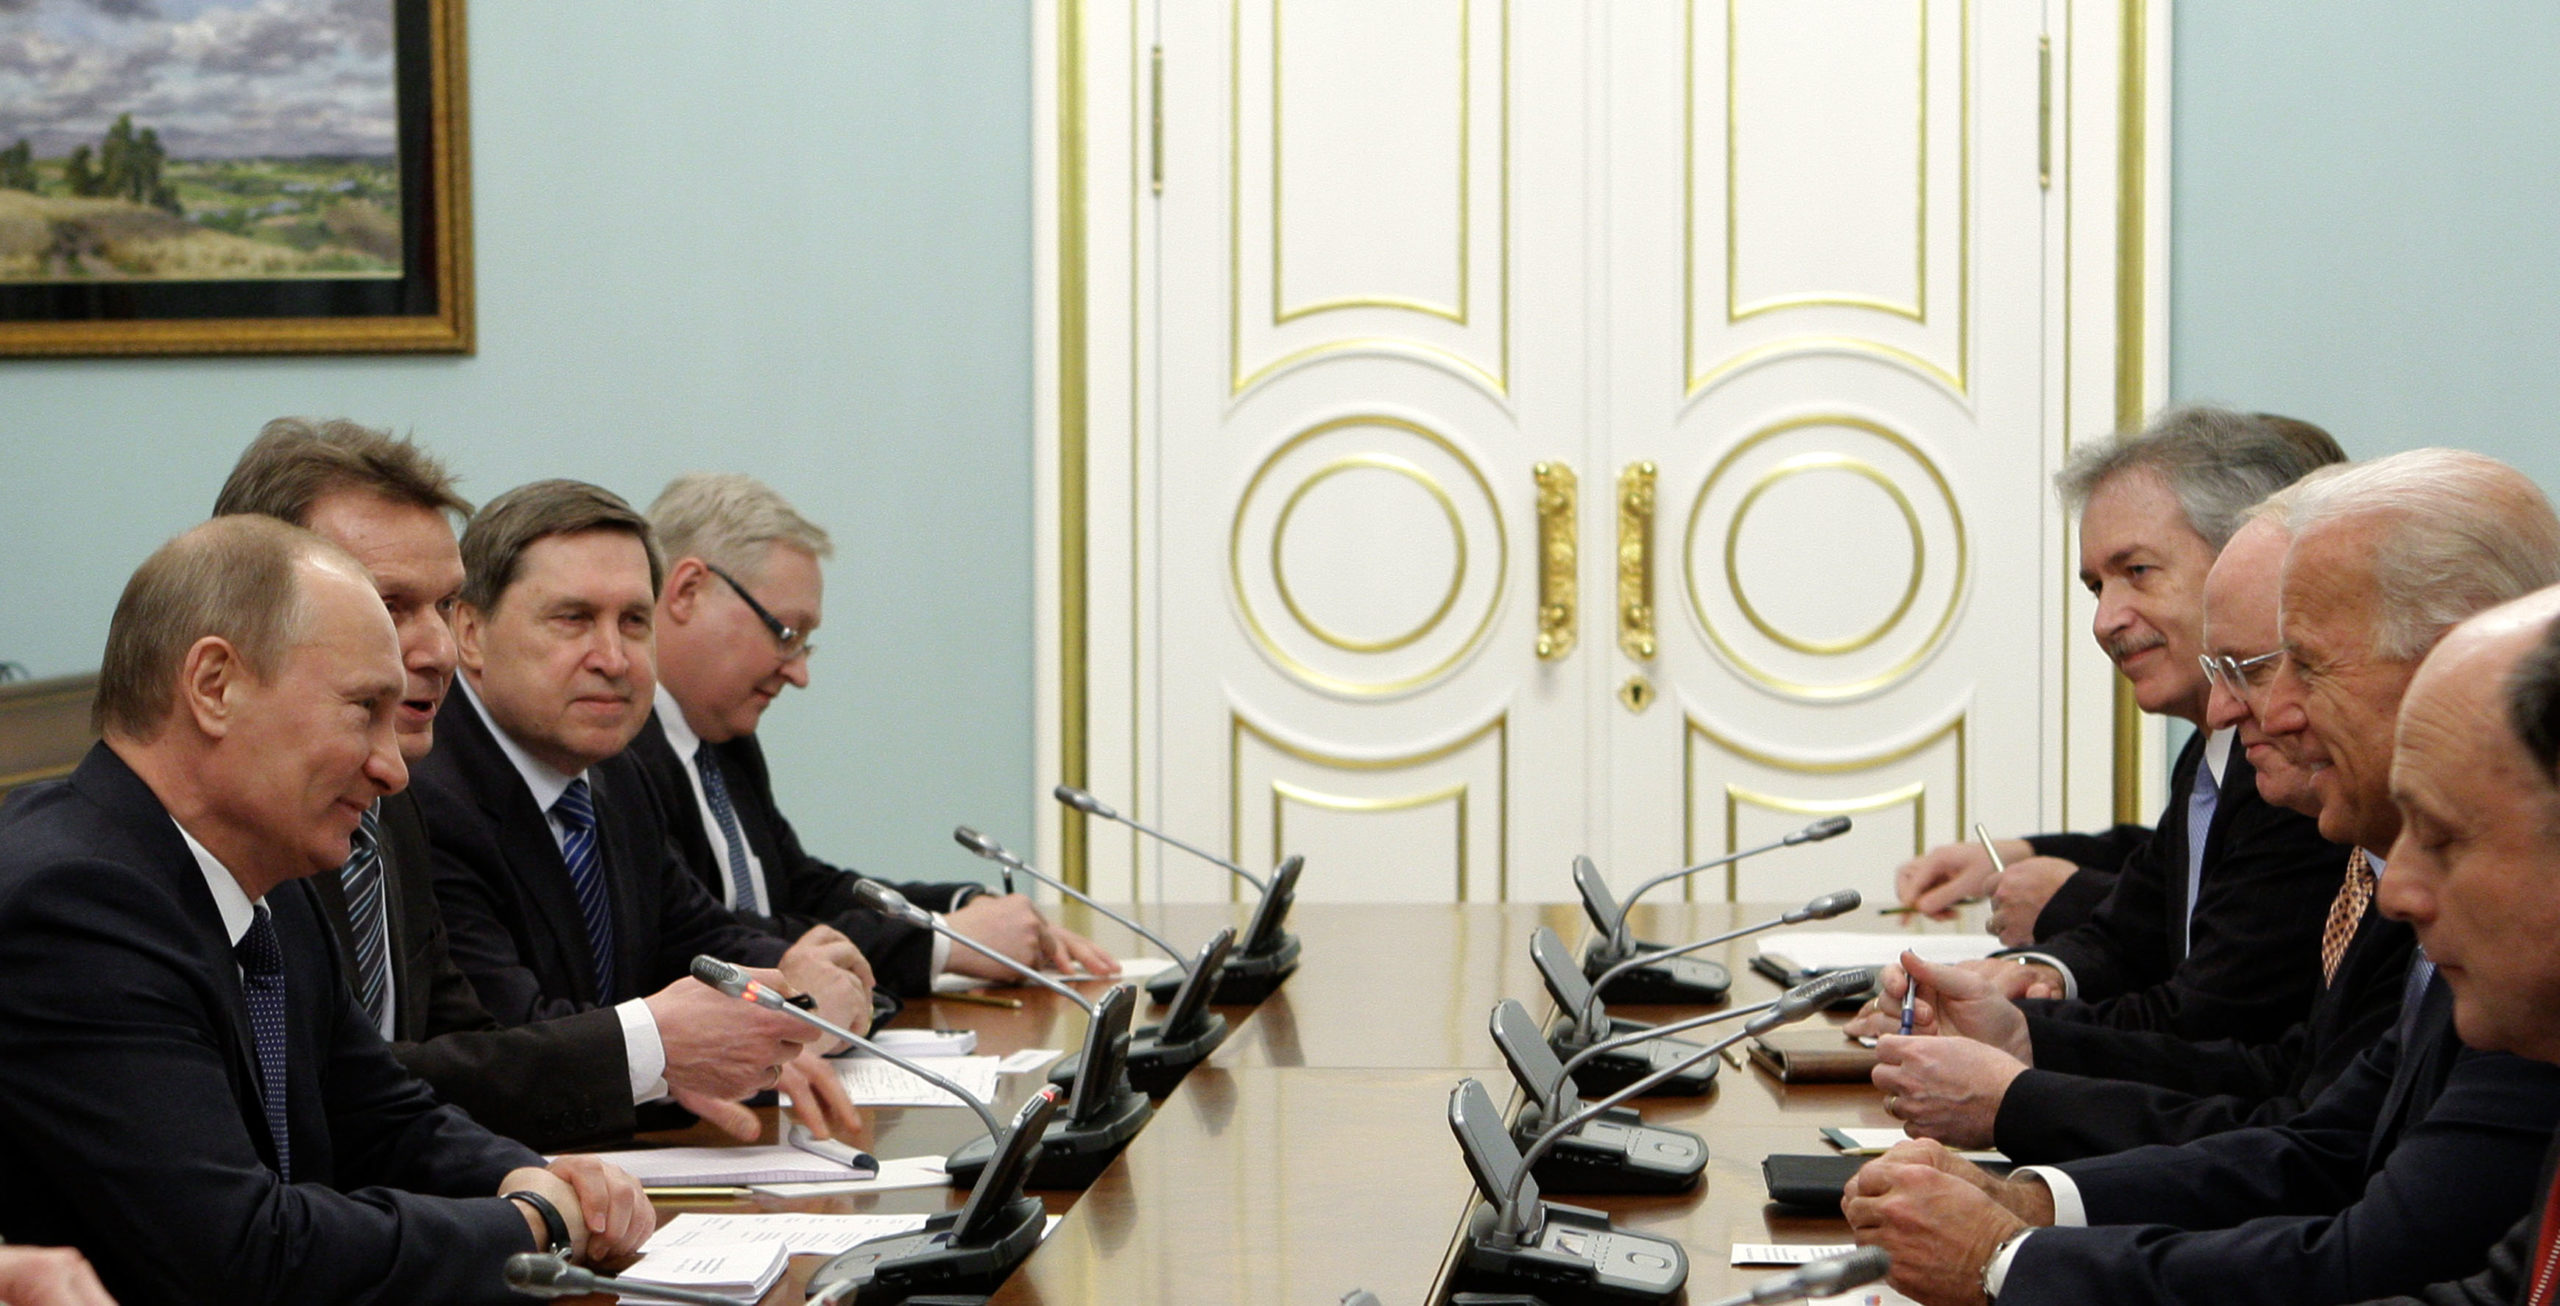 """Russian Prime Minister Vladimir Putin (L) and US Vice President Joe Biden (2nd R) meet on March 10, 2011 with their delegations in Moscow. Putin on March 10 proposed to Biden that Russia and the United States abolish visas in a """"historic"""" step to seal a revival in ties. Biden's visit is aimed at building on the """"reset"""" in relations spearheaded by Russian President Dmitry Medvedev but Putin has until now enjoyed less cordial relations with Washington than his successor as Kremlin chief. (Photo credit should read ALEXEY DRUZHININ/AFP via Getty Images)"""